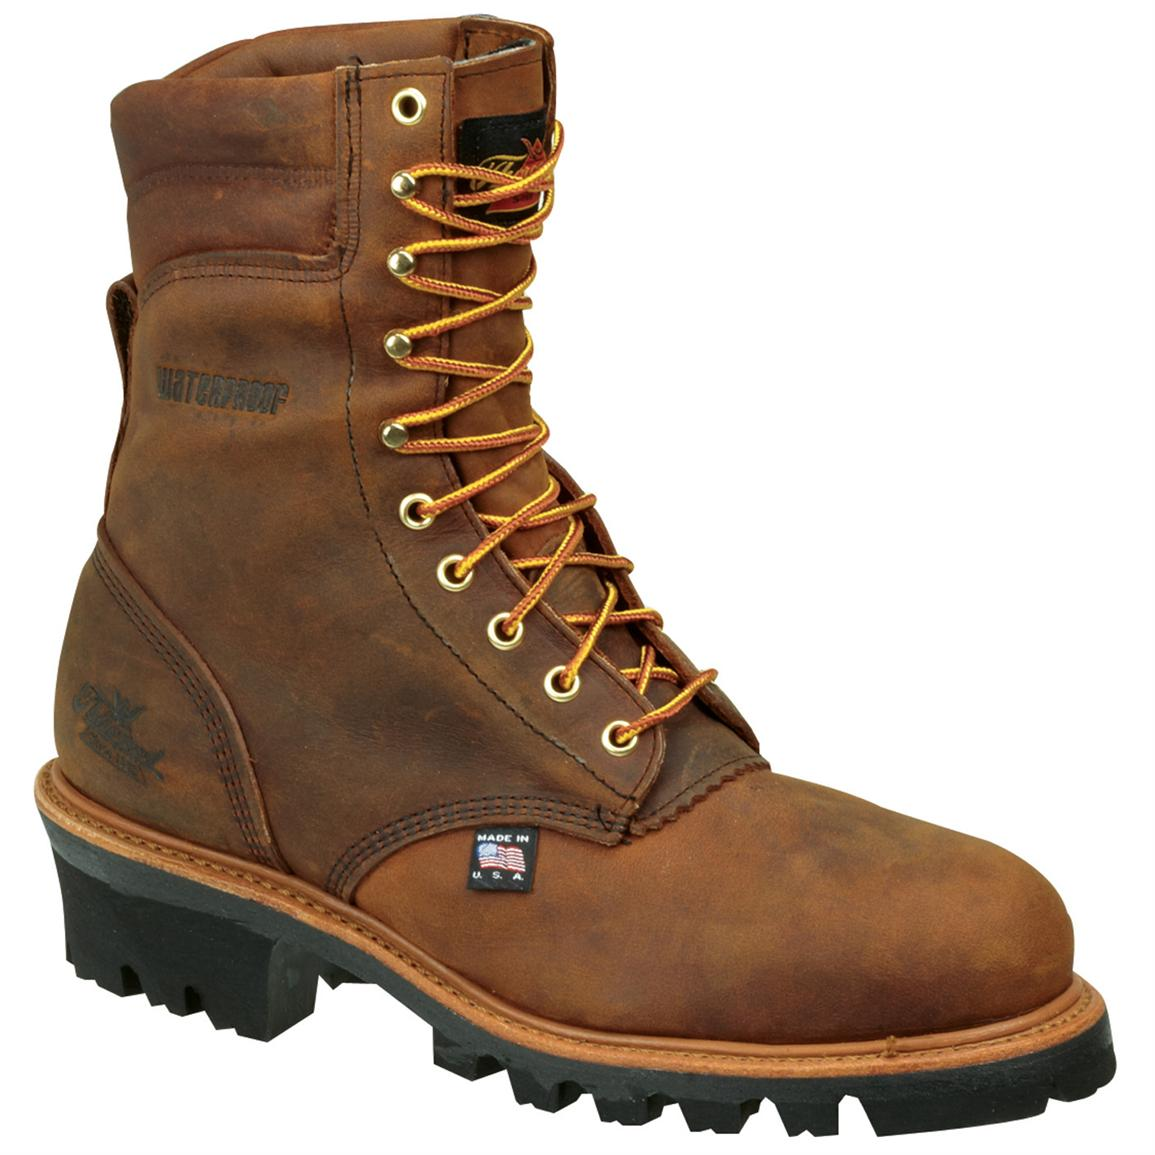 Men's Thorogood® 8 inch Waterproof 400-gram Thinsulate™ Ultra Insulated Logger Work Boots, Brown